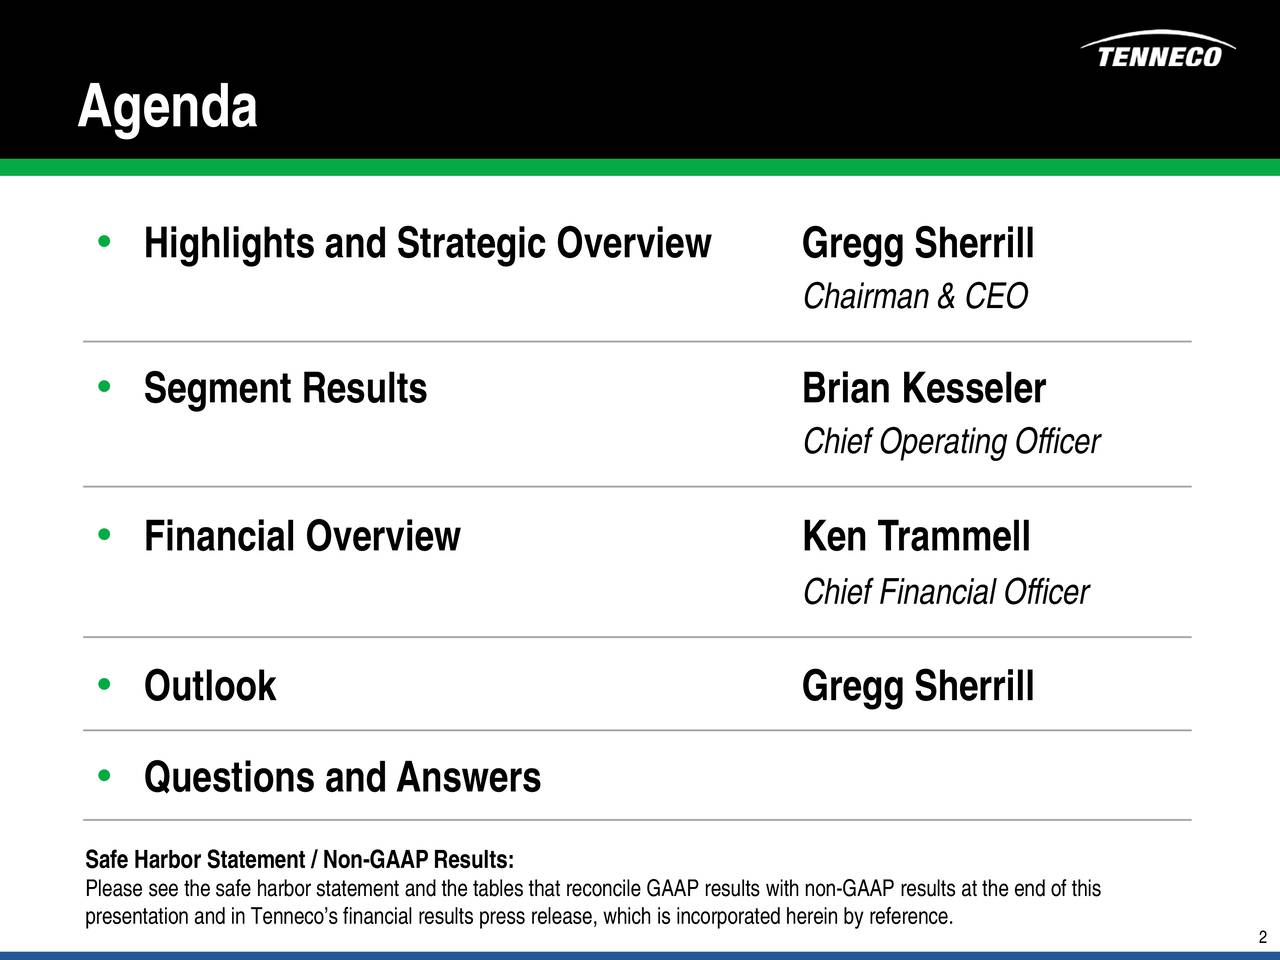 Highlights and Strategic Overview Gregg Sherrill Chairman & CEO Segment Results Brian Kesseler Chief Operating Officer Financial Overview Ken Trammell Chief Financial Officer Outlook Gregg Sherrill Questions and Answers Please see the safe harbor statement and the tables that reconcile GAAP results with non-GAAP results at the end of this presentation and in Tennecos financial results press release, which is incorporated herein by reference.